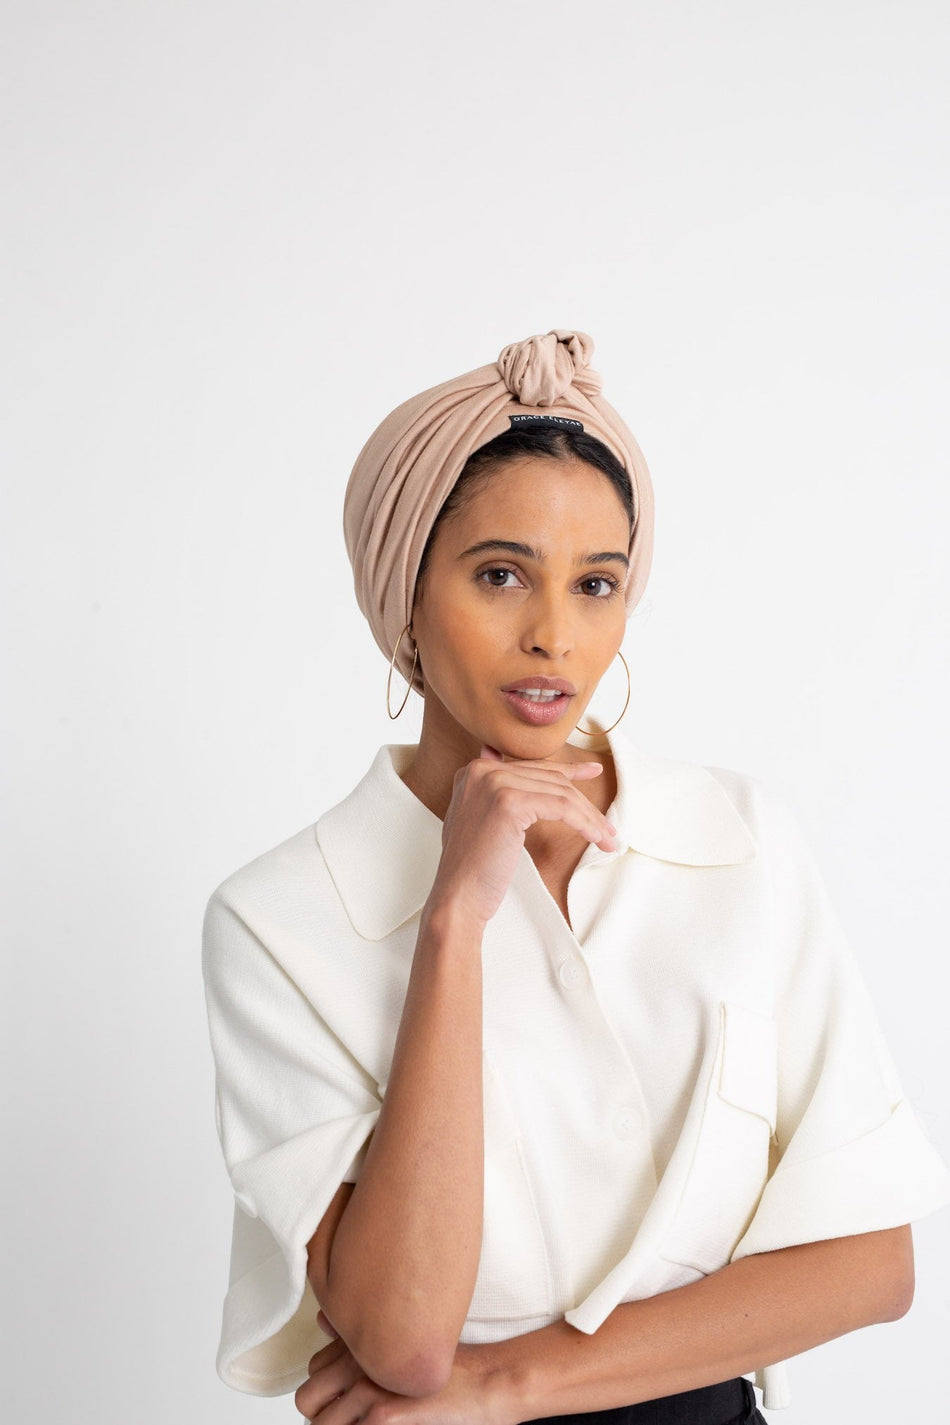 Walnut Satin-Lined Knot Turban